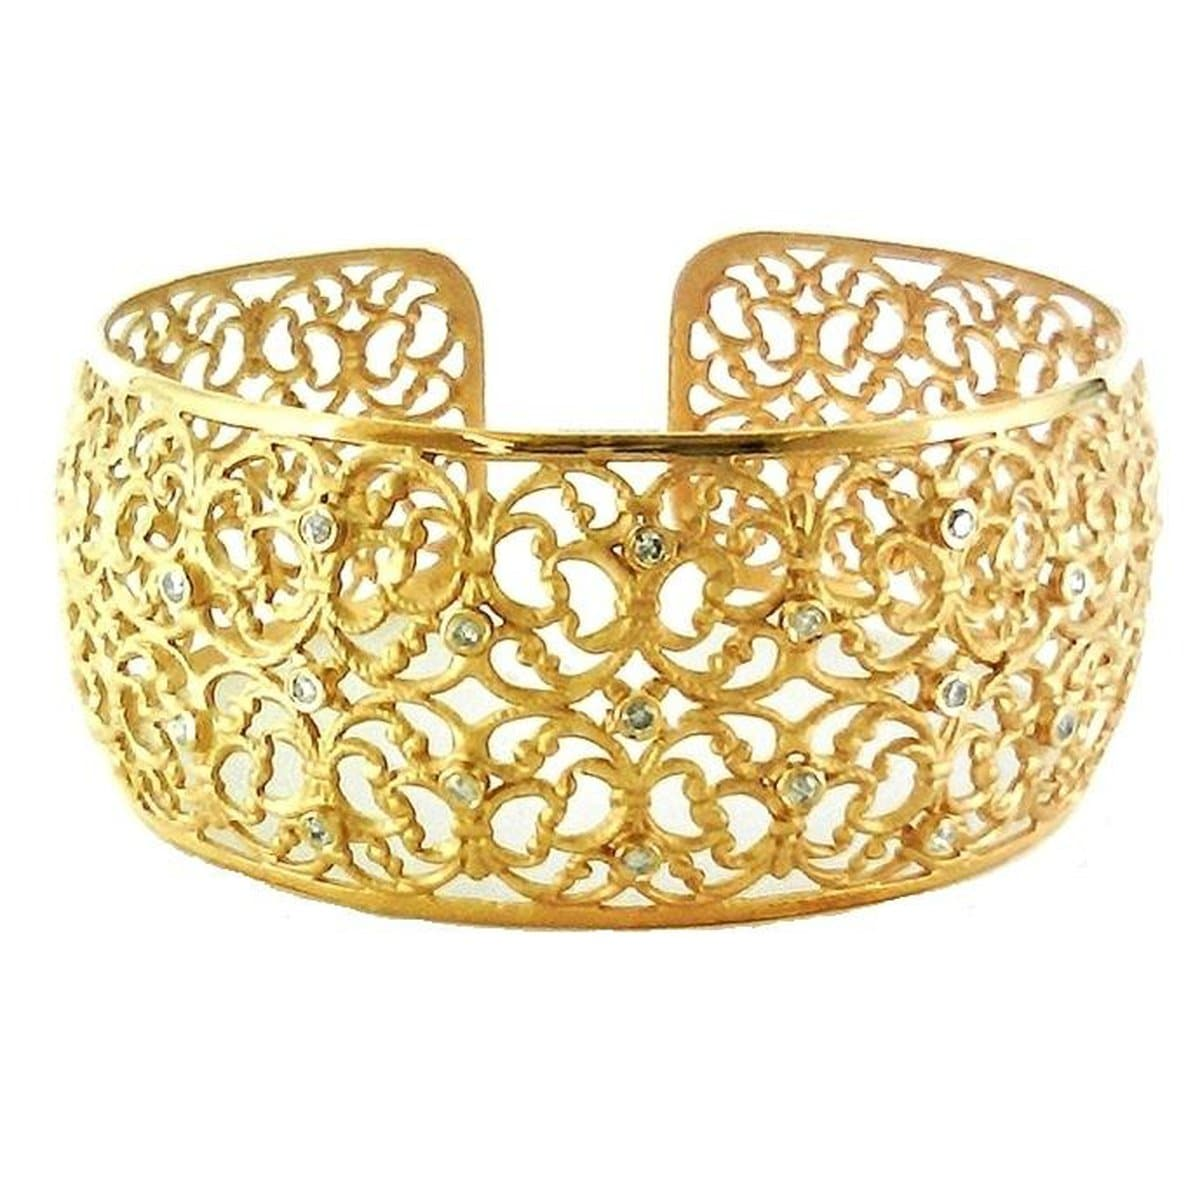 Marika Diamond & 14k Gold Cuff - M2512